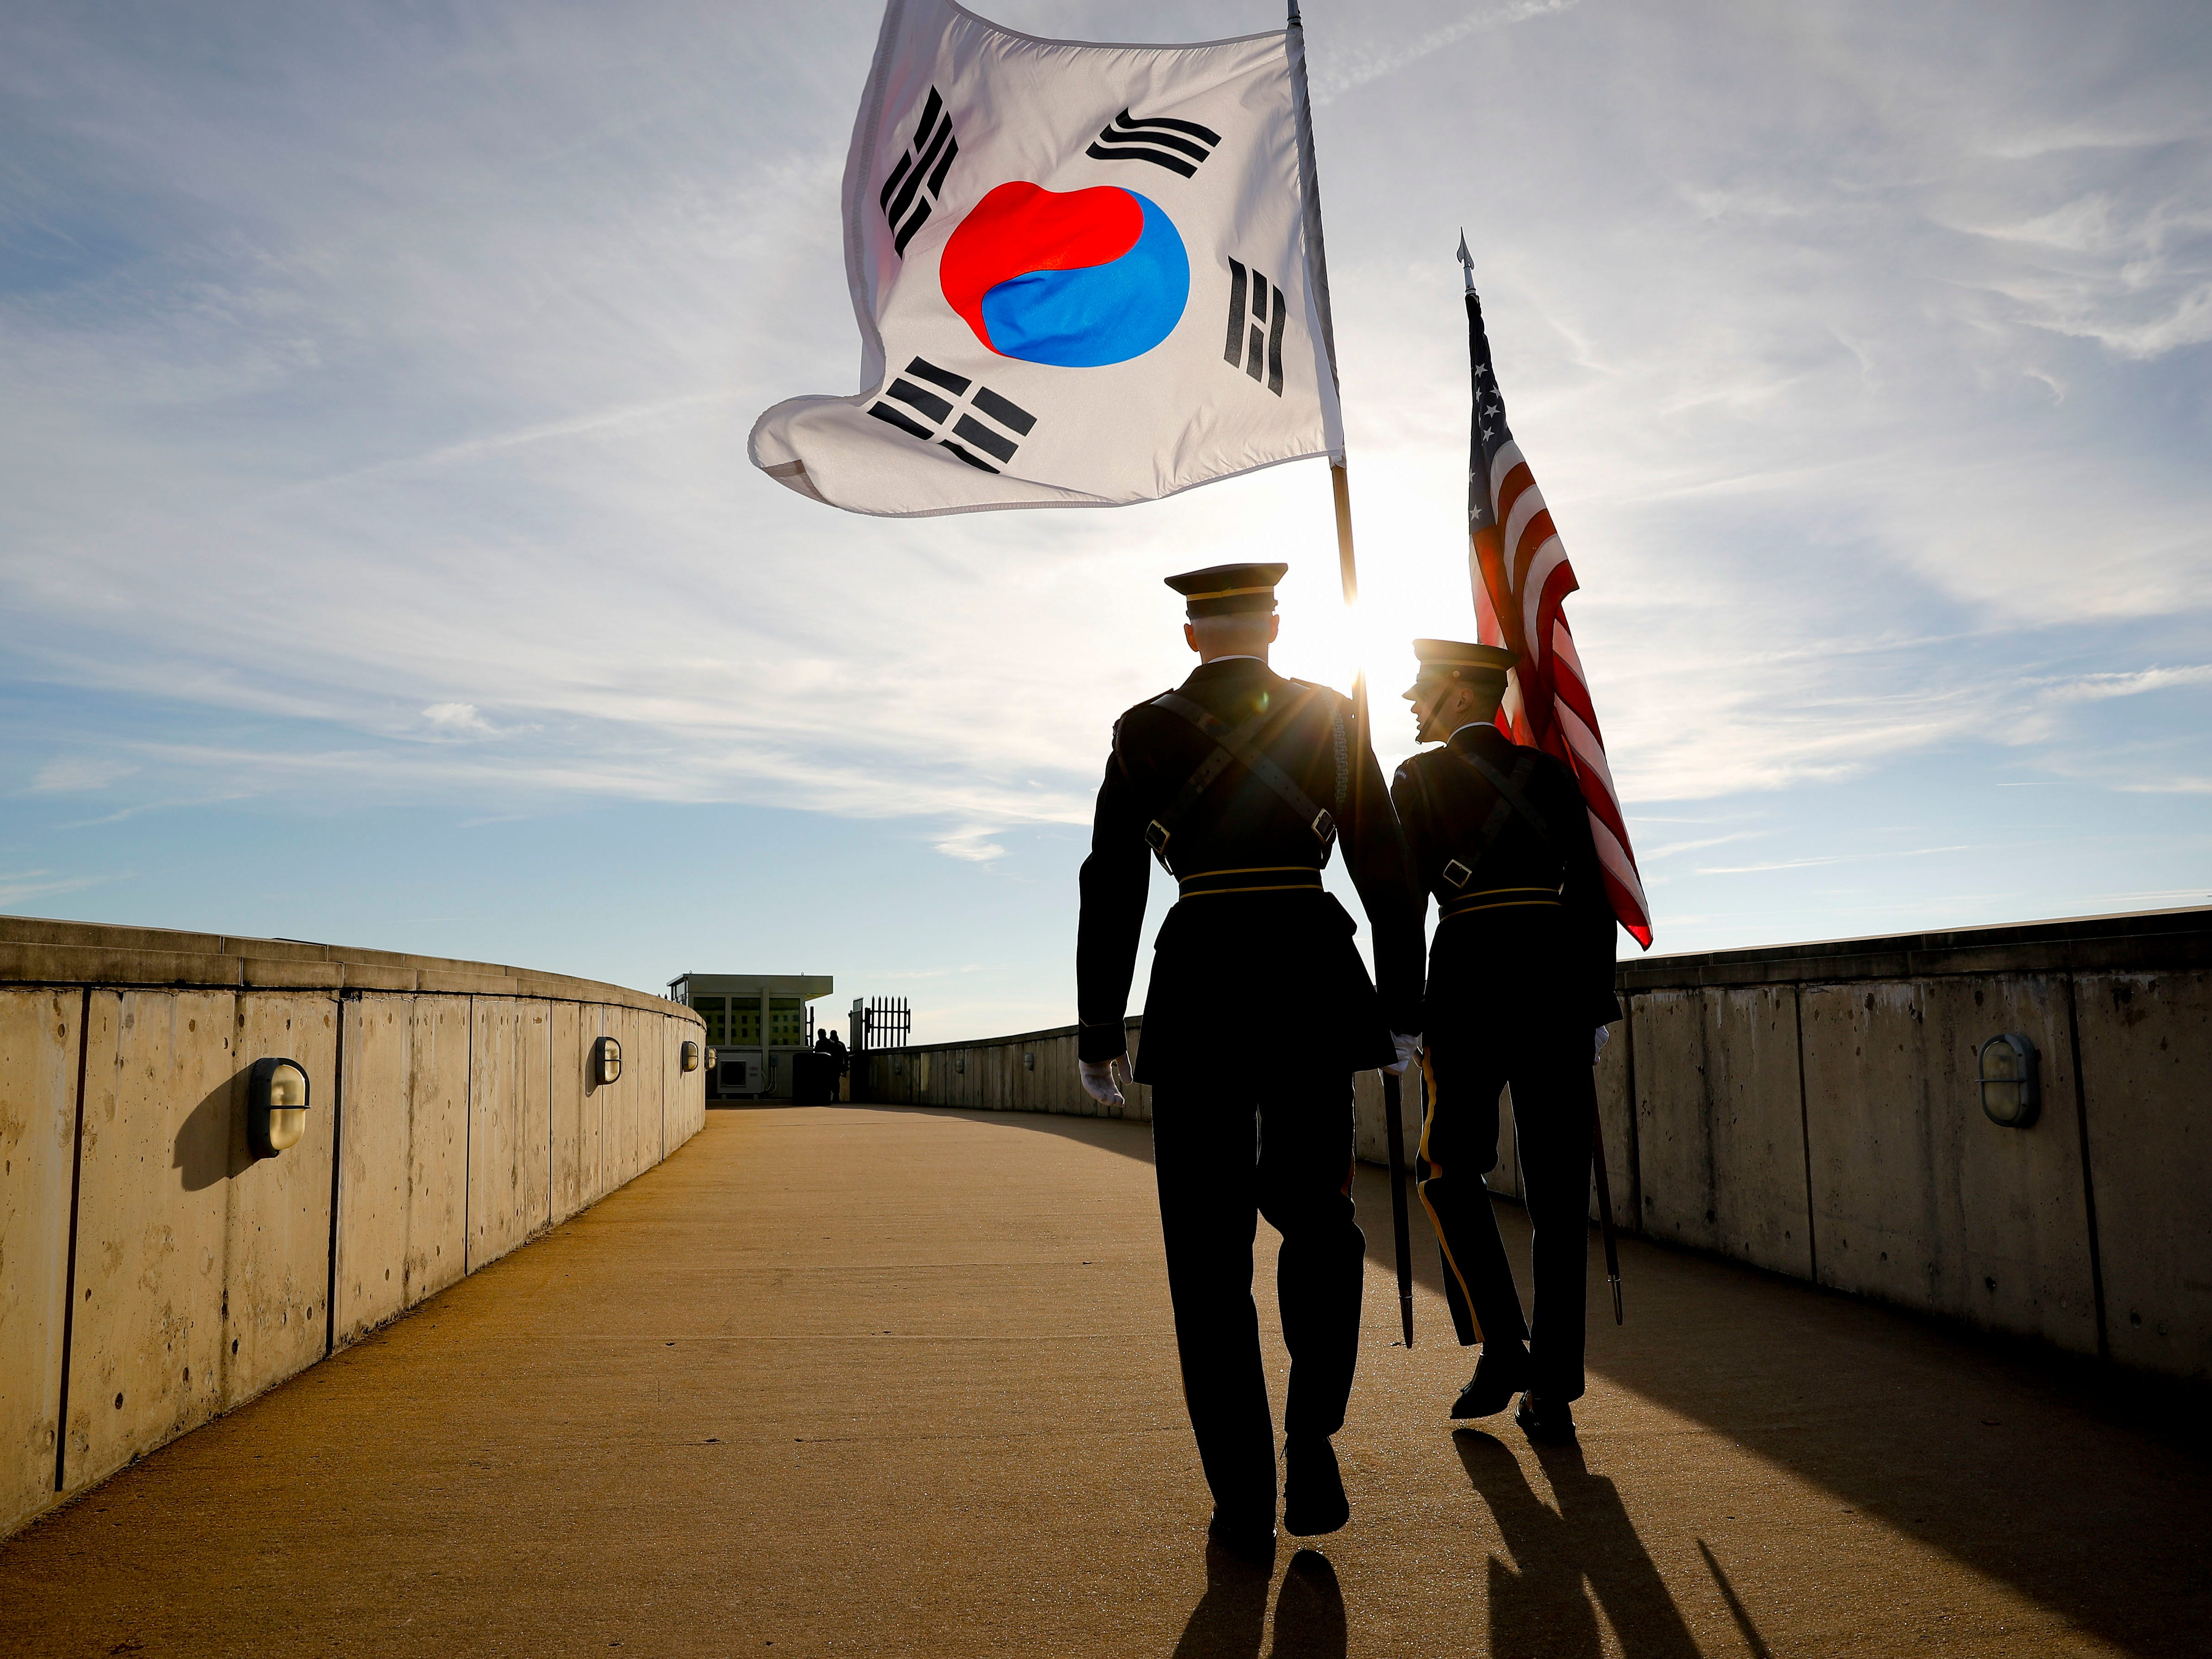 Members of the Honor Guard carry U.S. and South Korea flags after participating in the 2018 Security Consultative at the Pentagon, co-hosted by Defense Secretary Jim Mattis and South Korea Minister of Defense Jeong Kyeong-doo, Wednesday, Oct. 31, 2018.